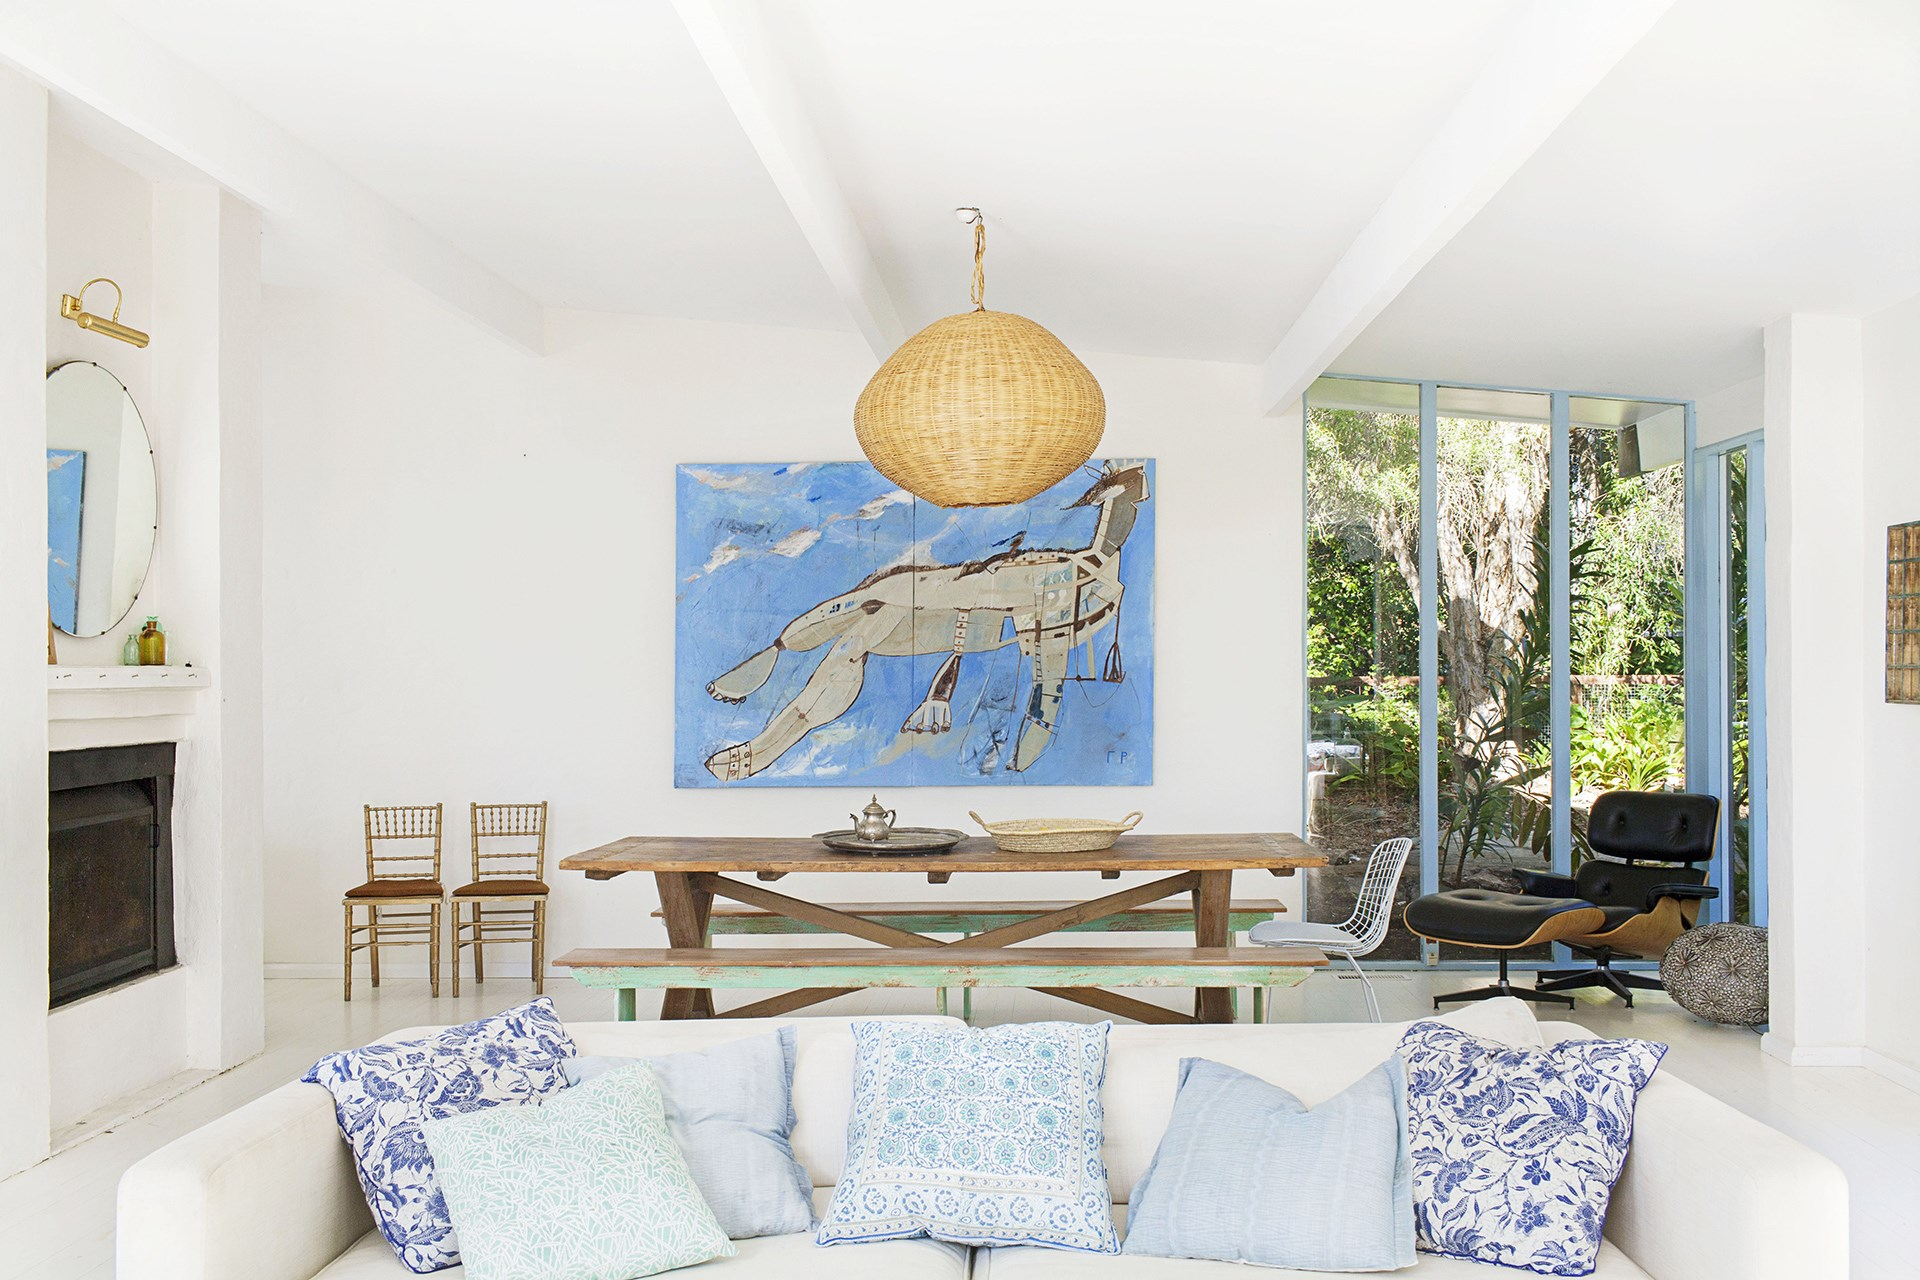 """You don't have to own expensive **beach theme decor** to make a big statement. A coastal-inspired artwork like this interpretation of Barrenjoey Headland by George Raftopoulos hanging in this [Palm Beach home](http://www.homestolove.com.au/gallery-heidis-moroccan-inspired-beach-house-1830